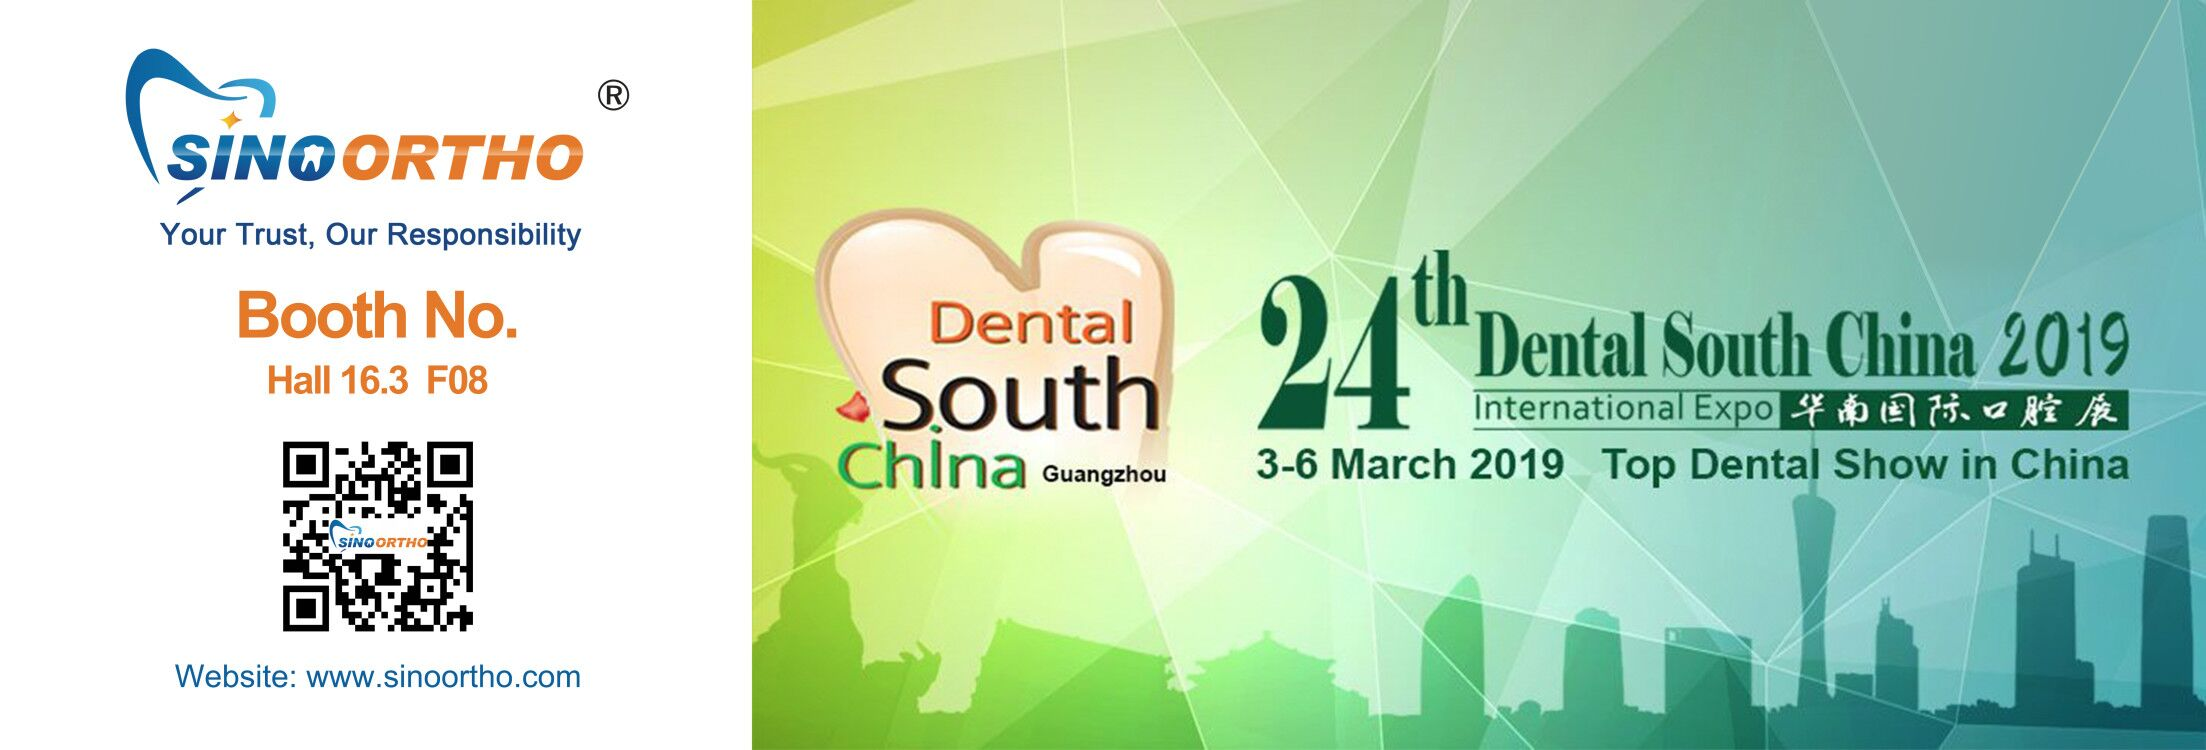 DENTAL SOUTH CHINA 2019 March 3rd-6th 2019 HALL 16.3 F08